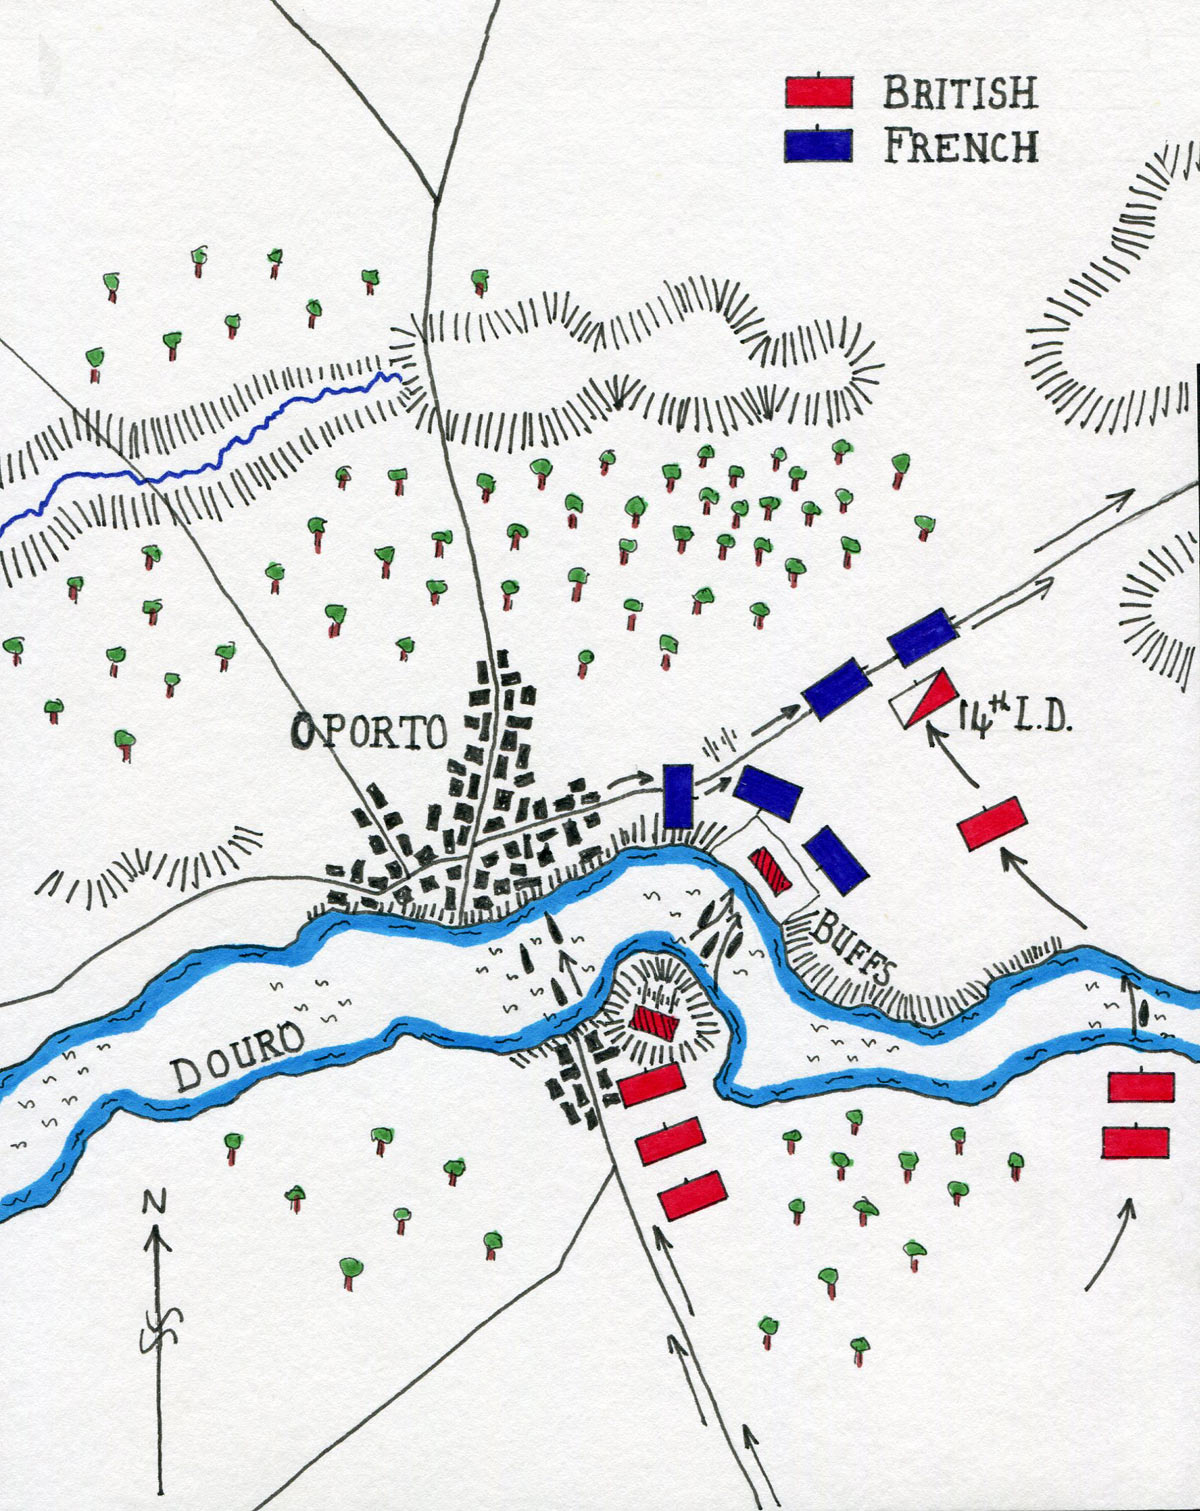 Map of the Battle of the Crossing of the Douro on 16th May 1809 in the Peninsular War: map by John Fawkes